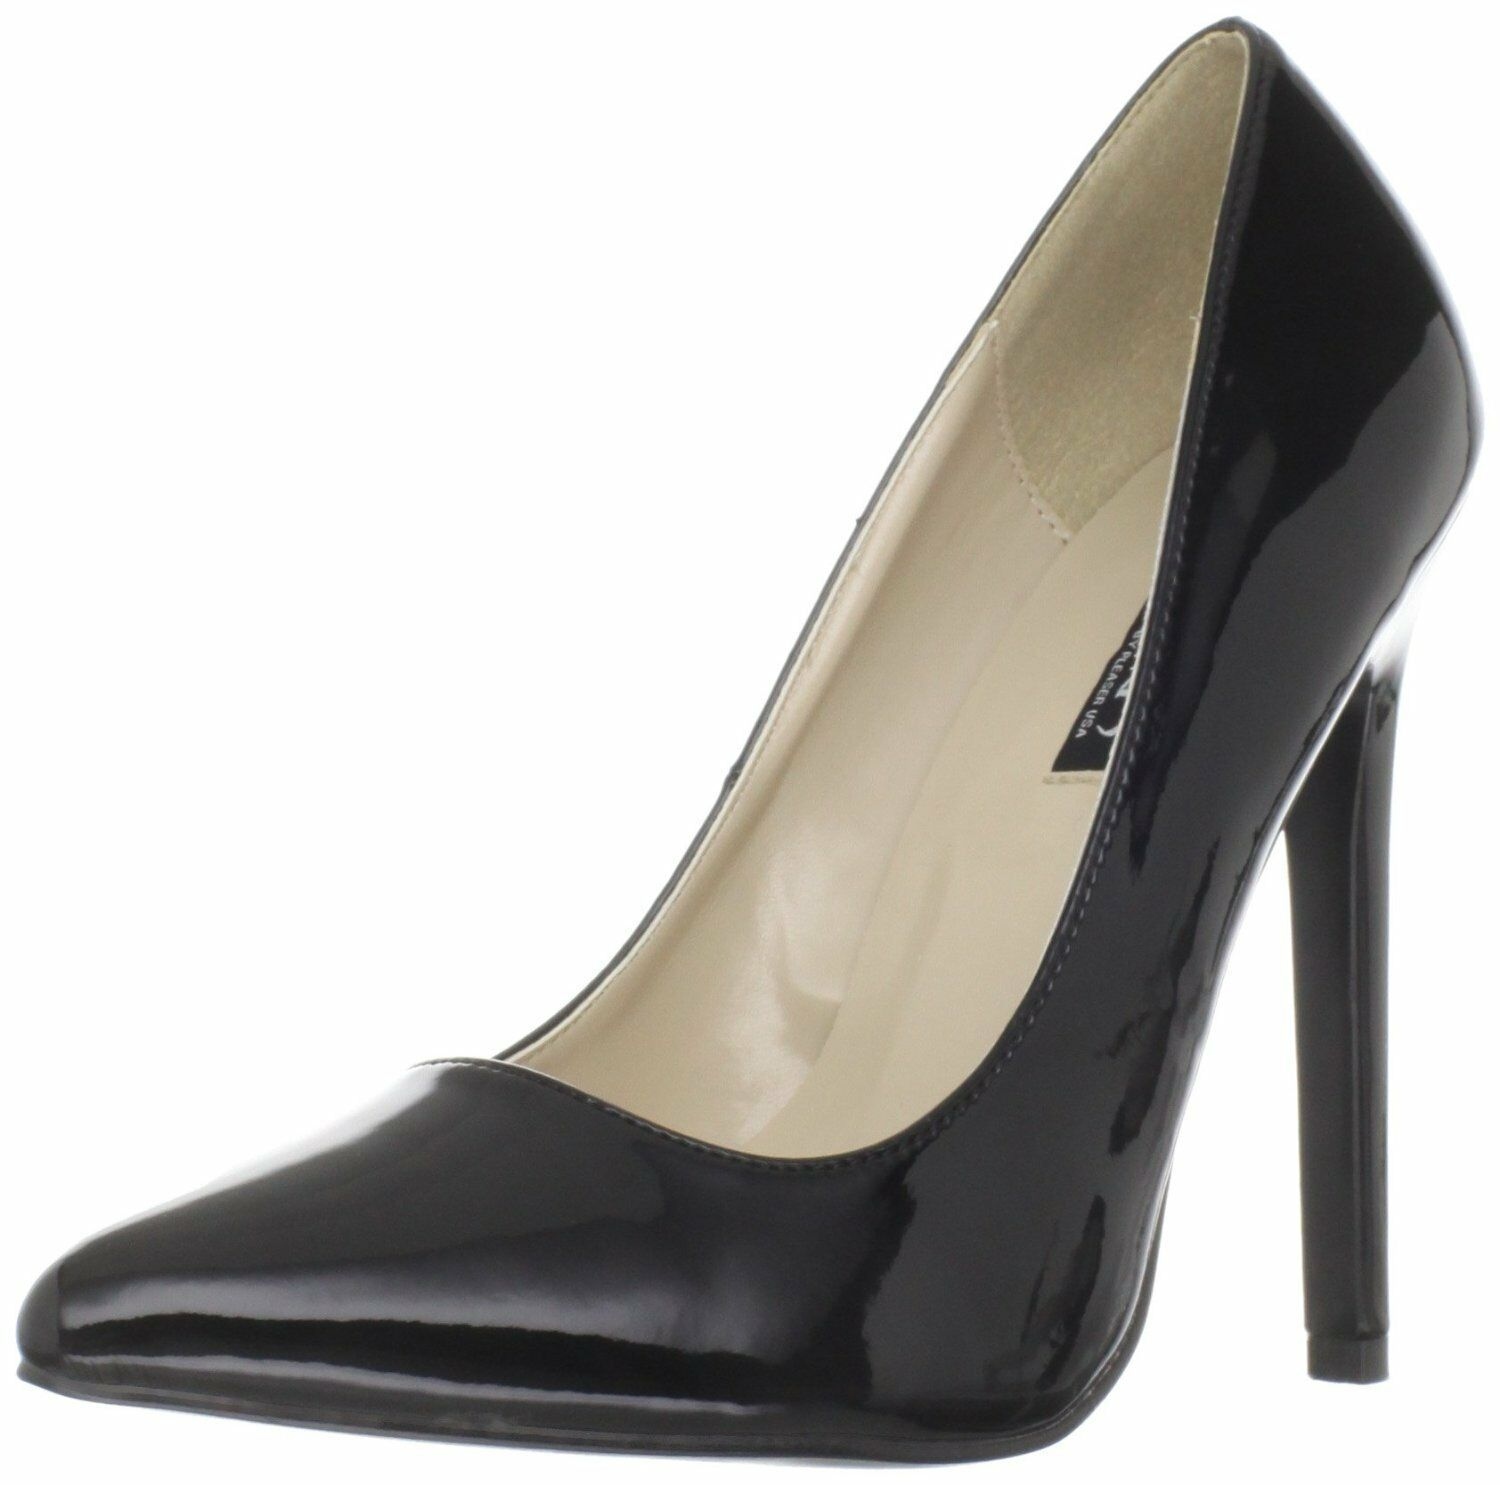 PLEASER SEXY 20 POINTY TOE 5 1/4